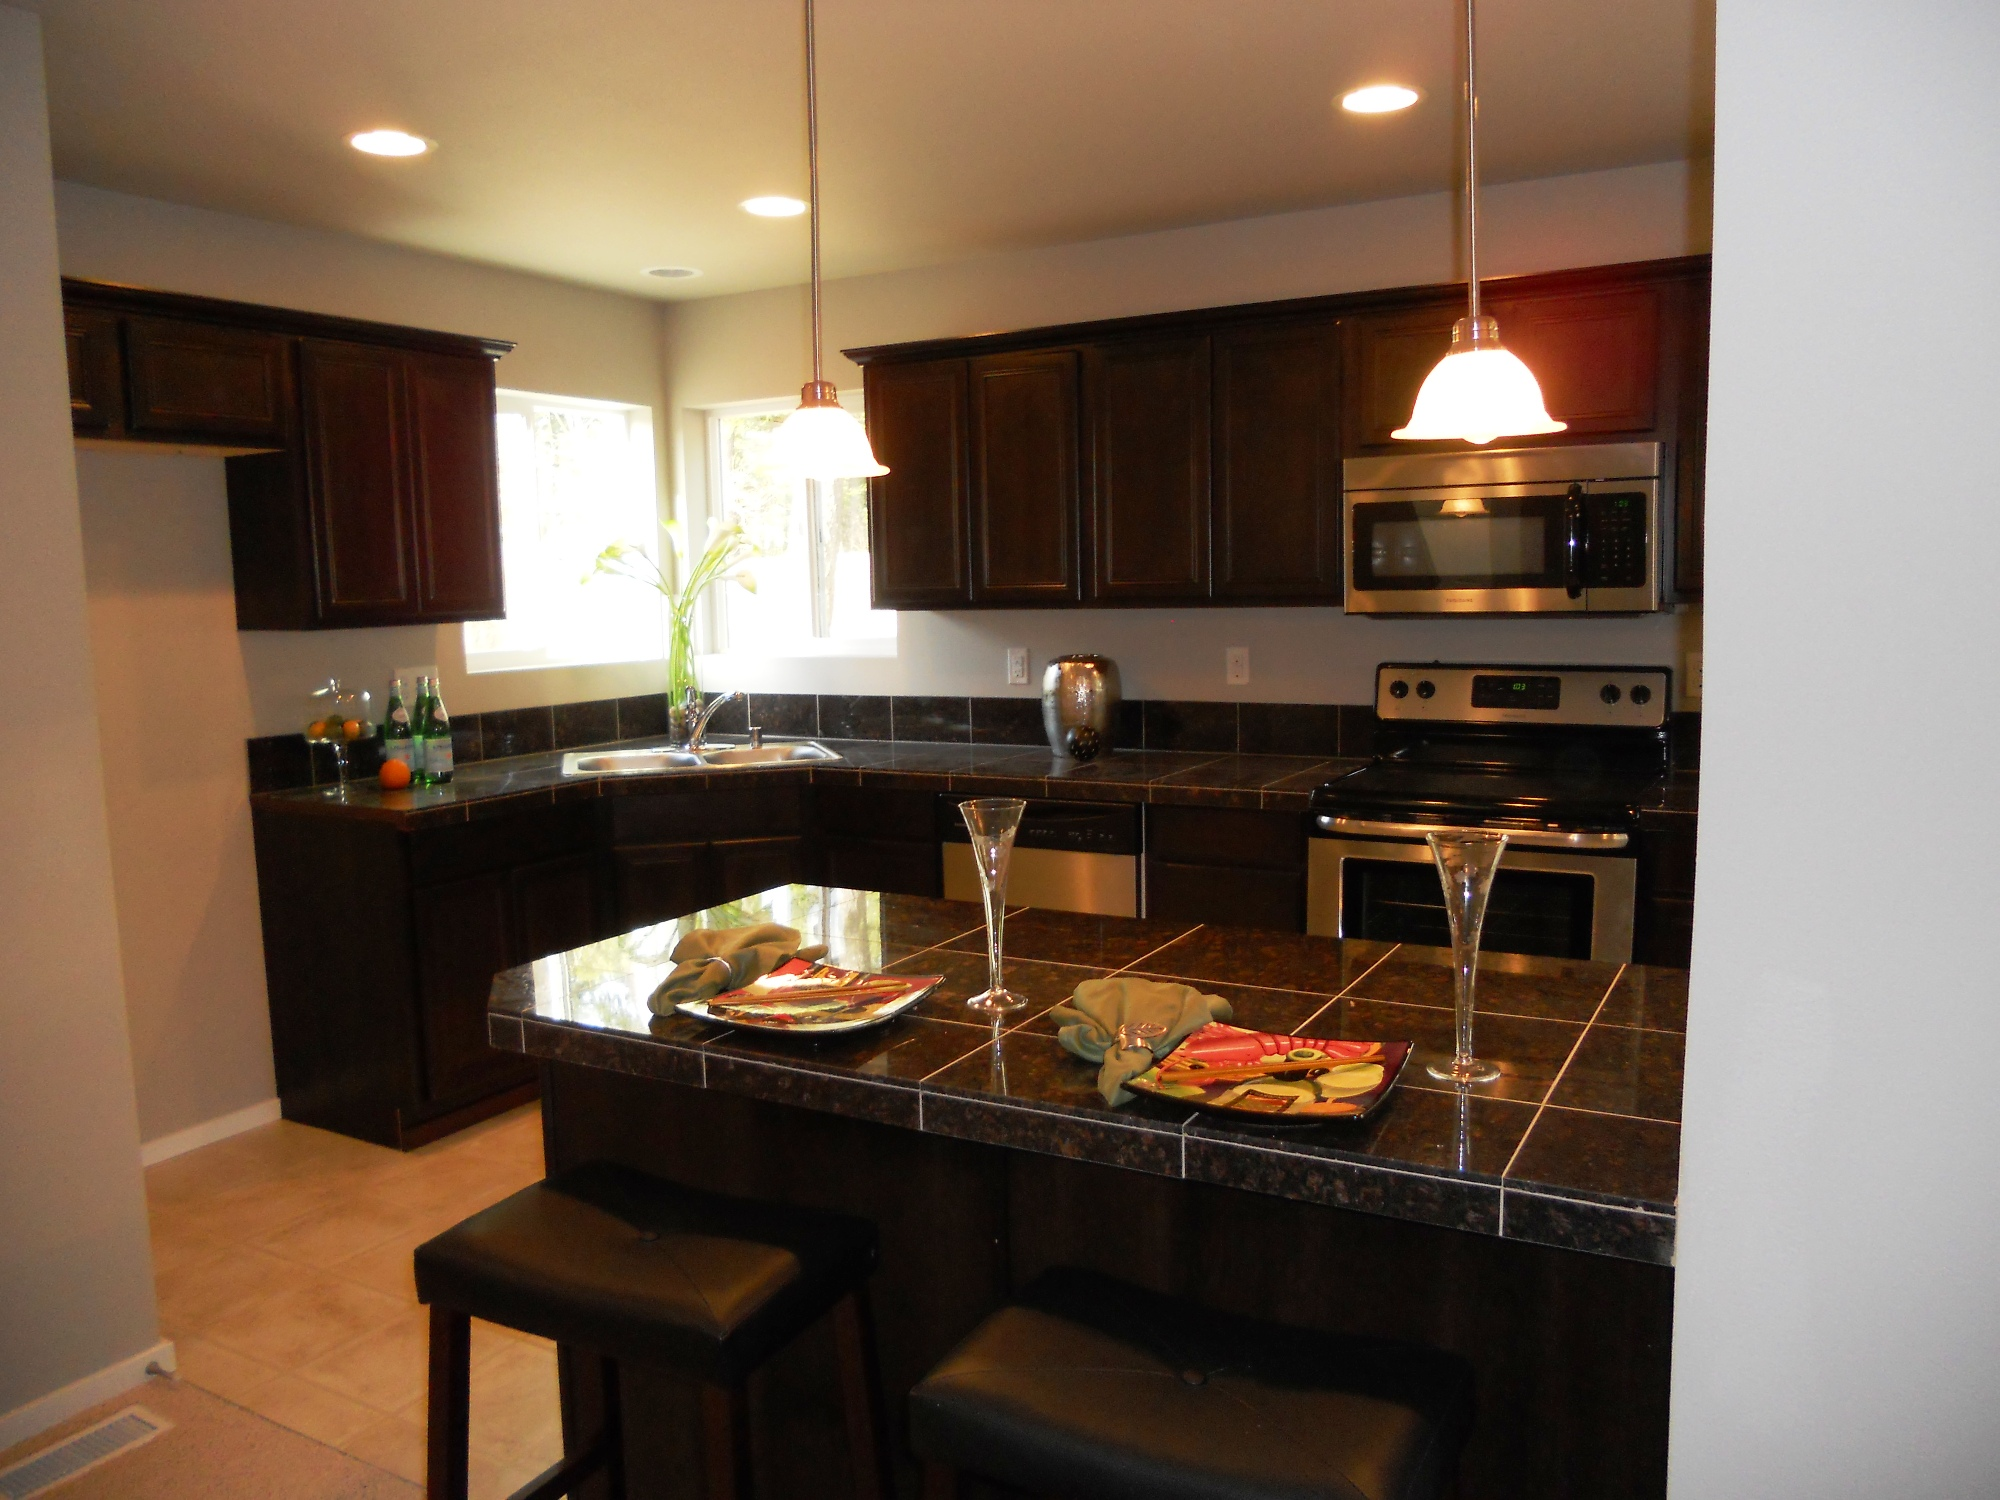 Model home new kitchen design regent homes for Kitchen cabinets models